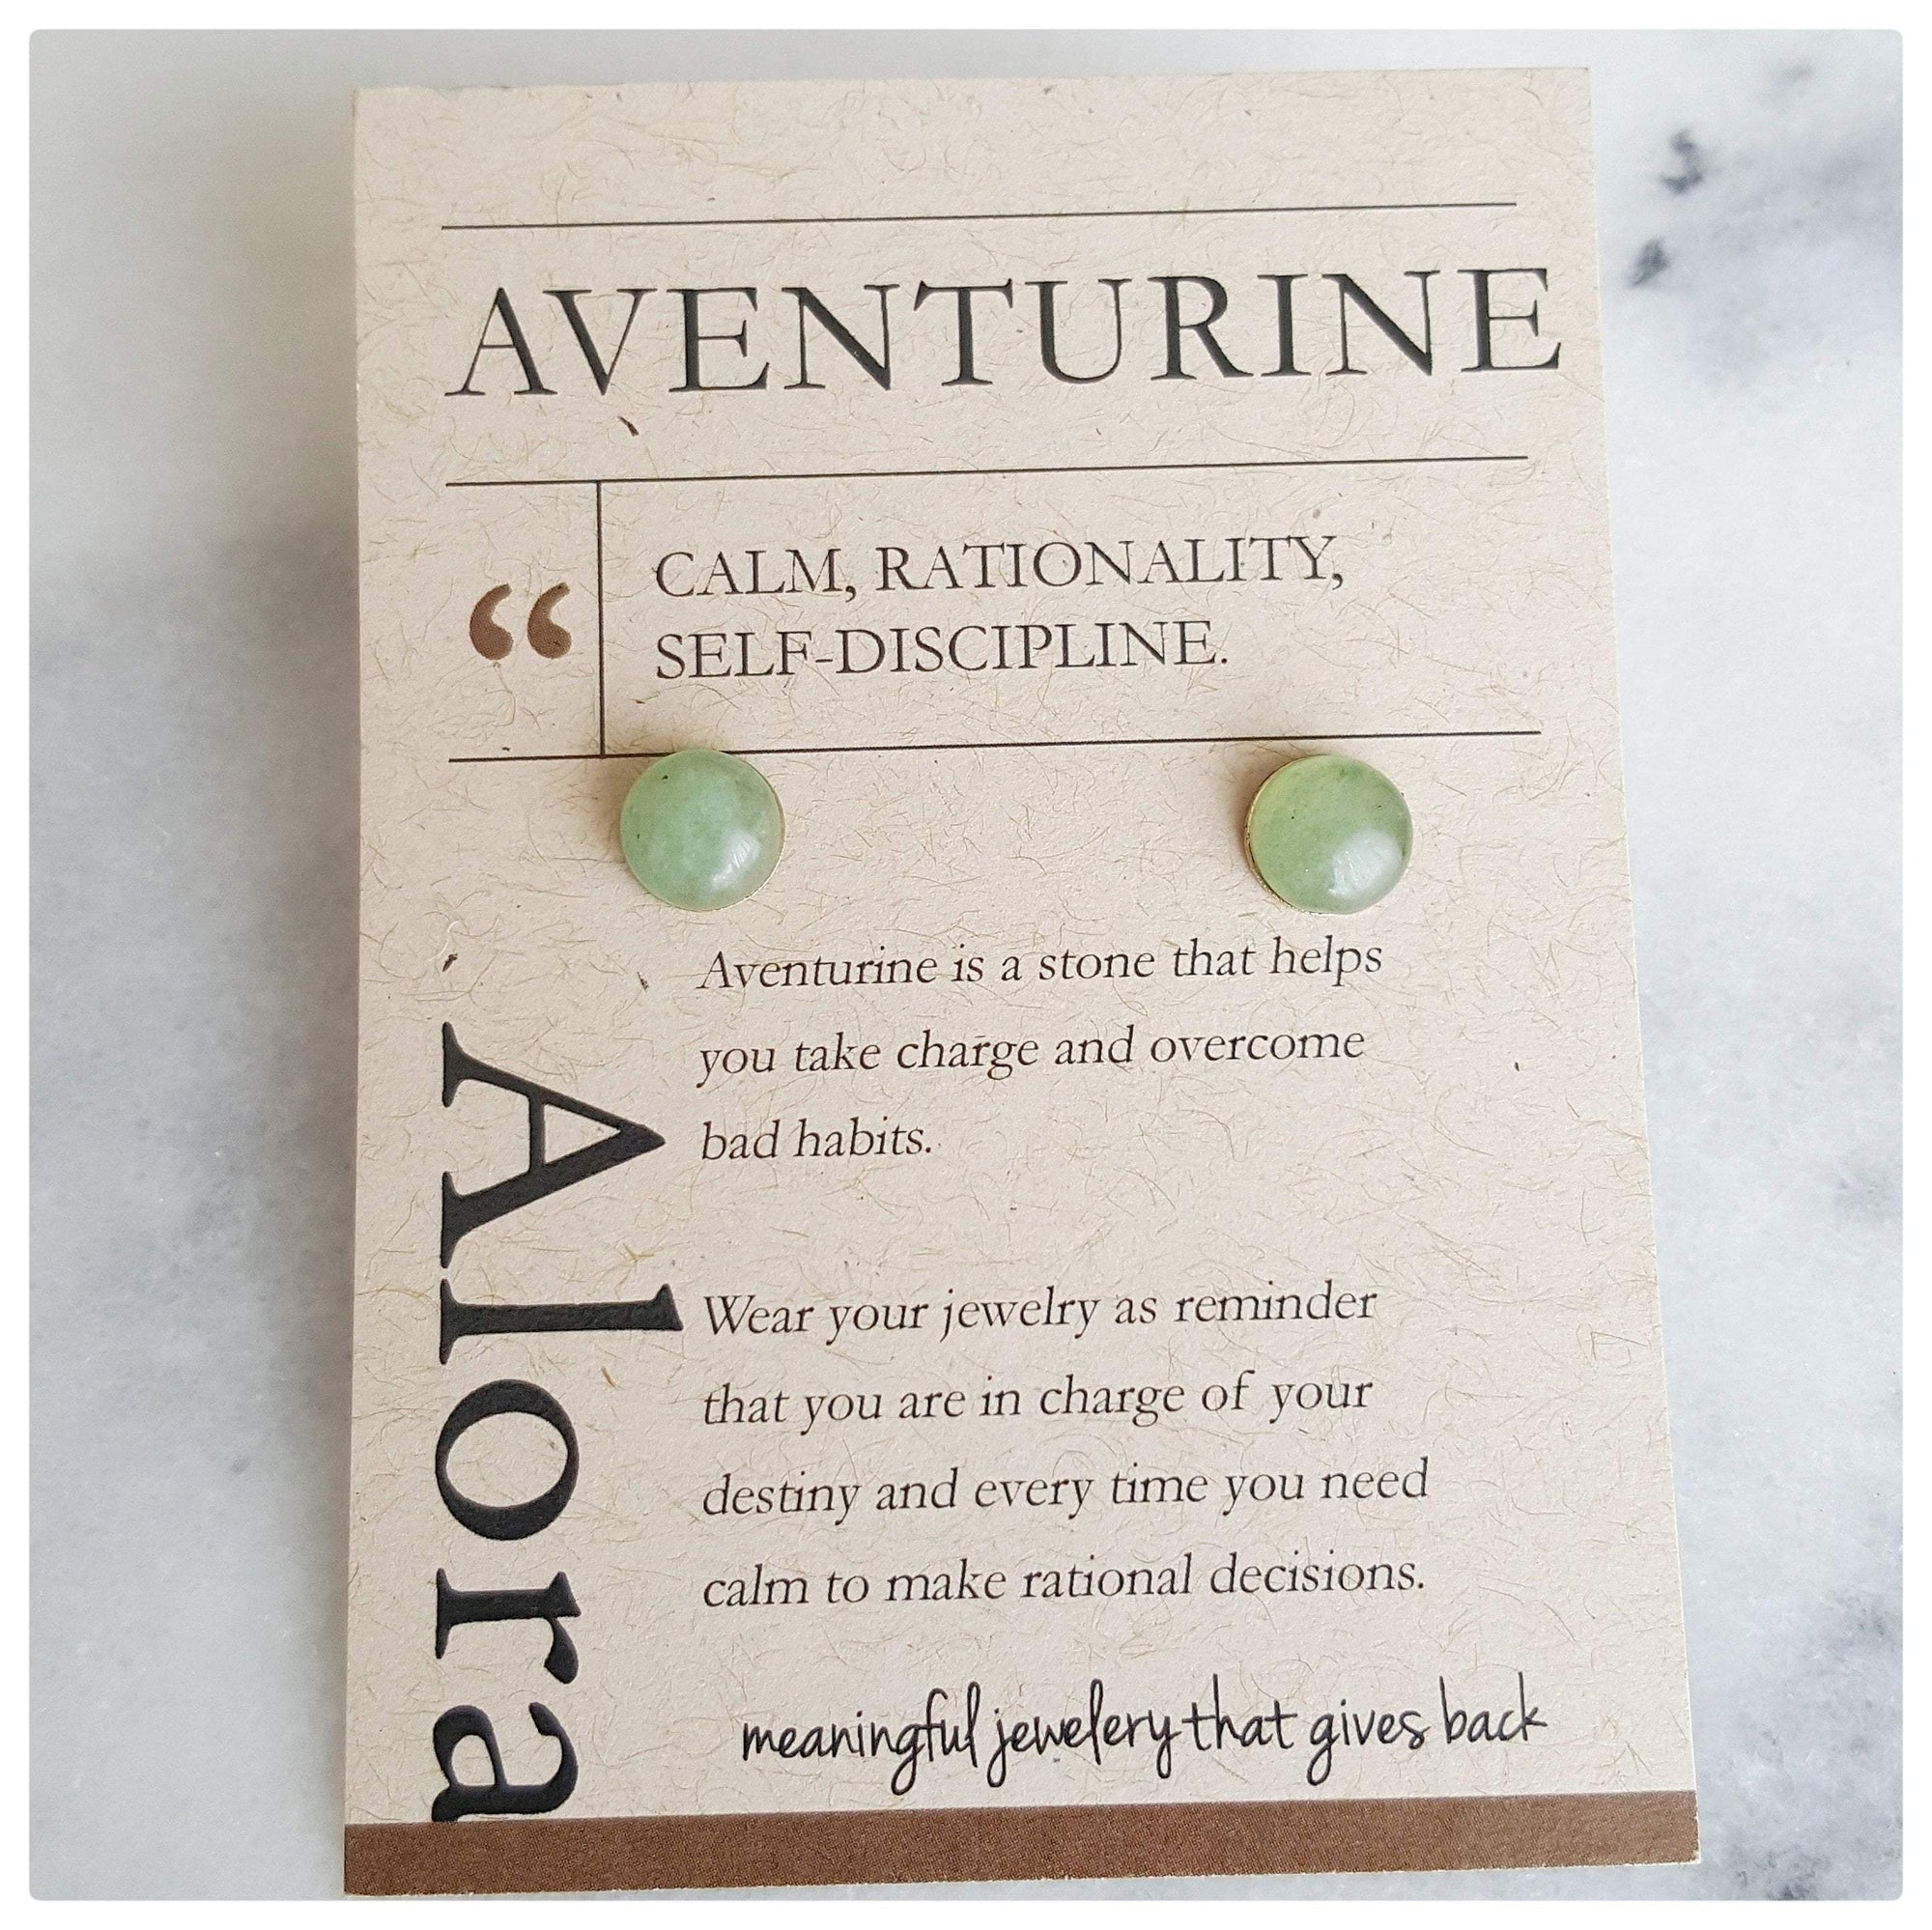 Calm, Rationality, Self-discipline | Stud Earrings | Green Aventurine Gemstone - Alora Boutique - Jewelry with meaning that gives back fashion for good